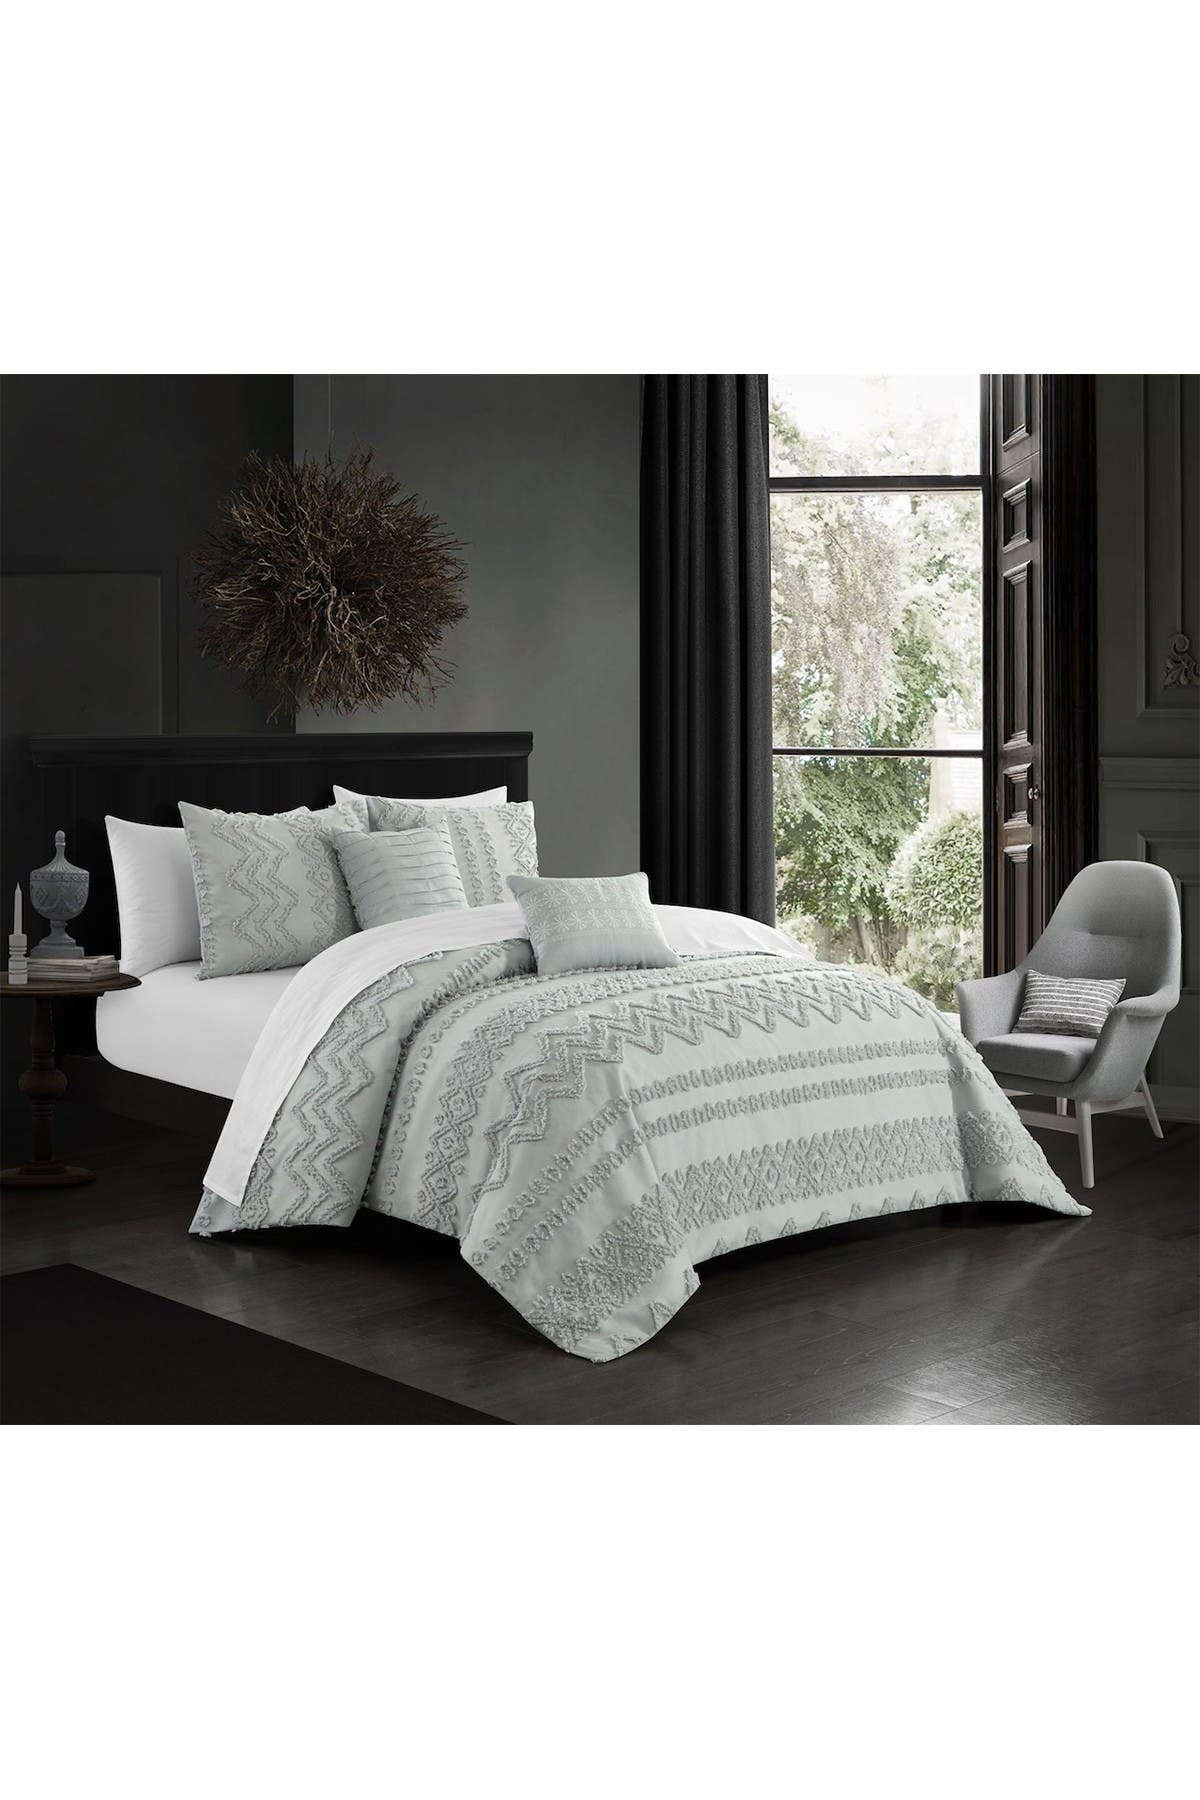 Chic Home Bedding Jenson Jacquard Geometric Design King Comforter Set Grey 5 Piece Set Nordstrom Rack